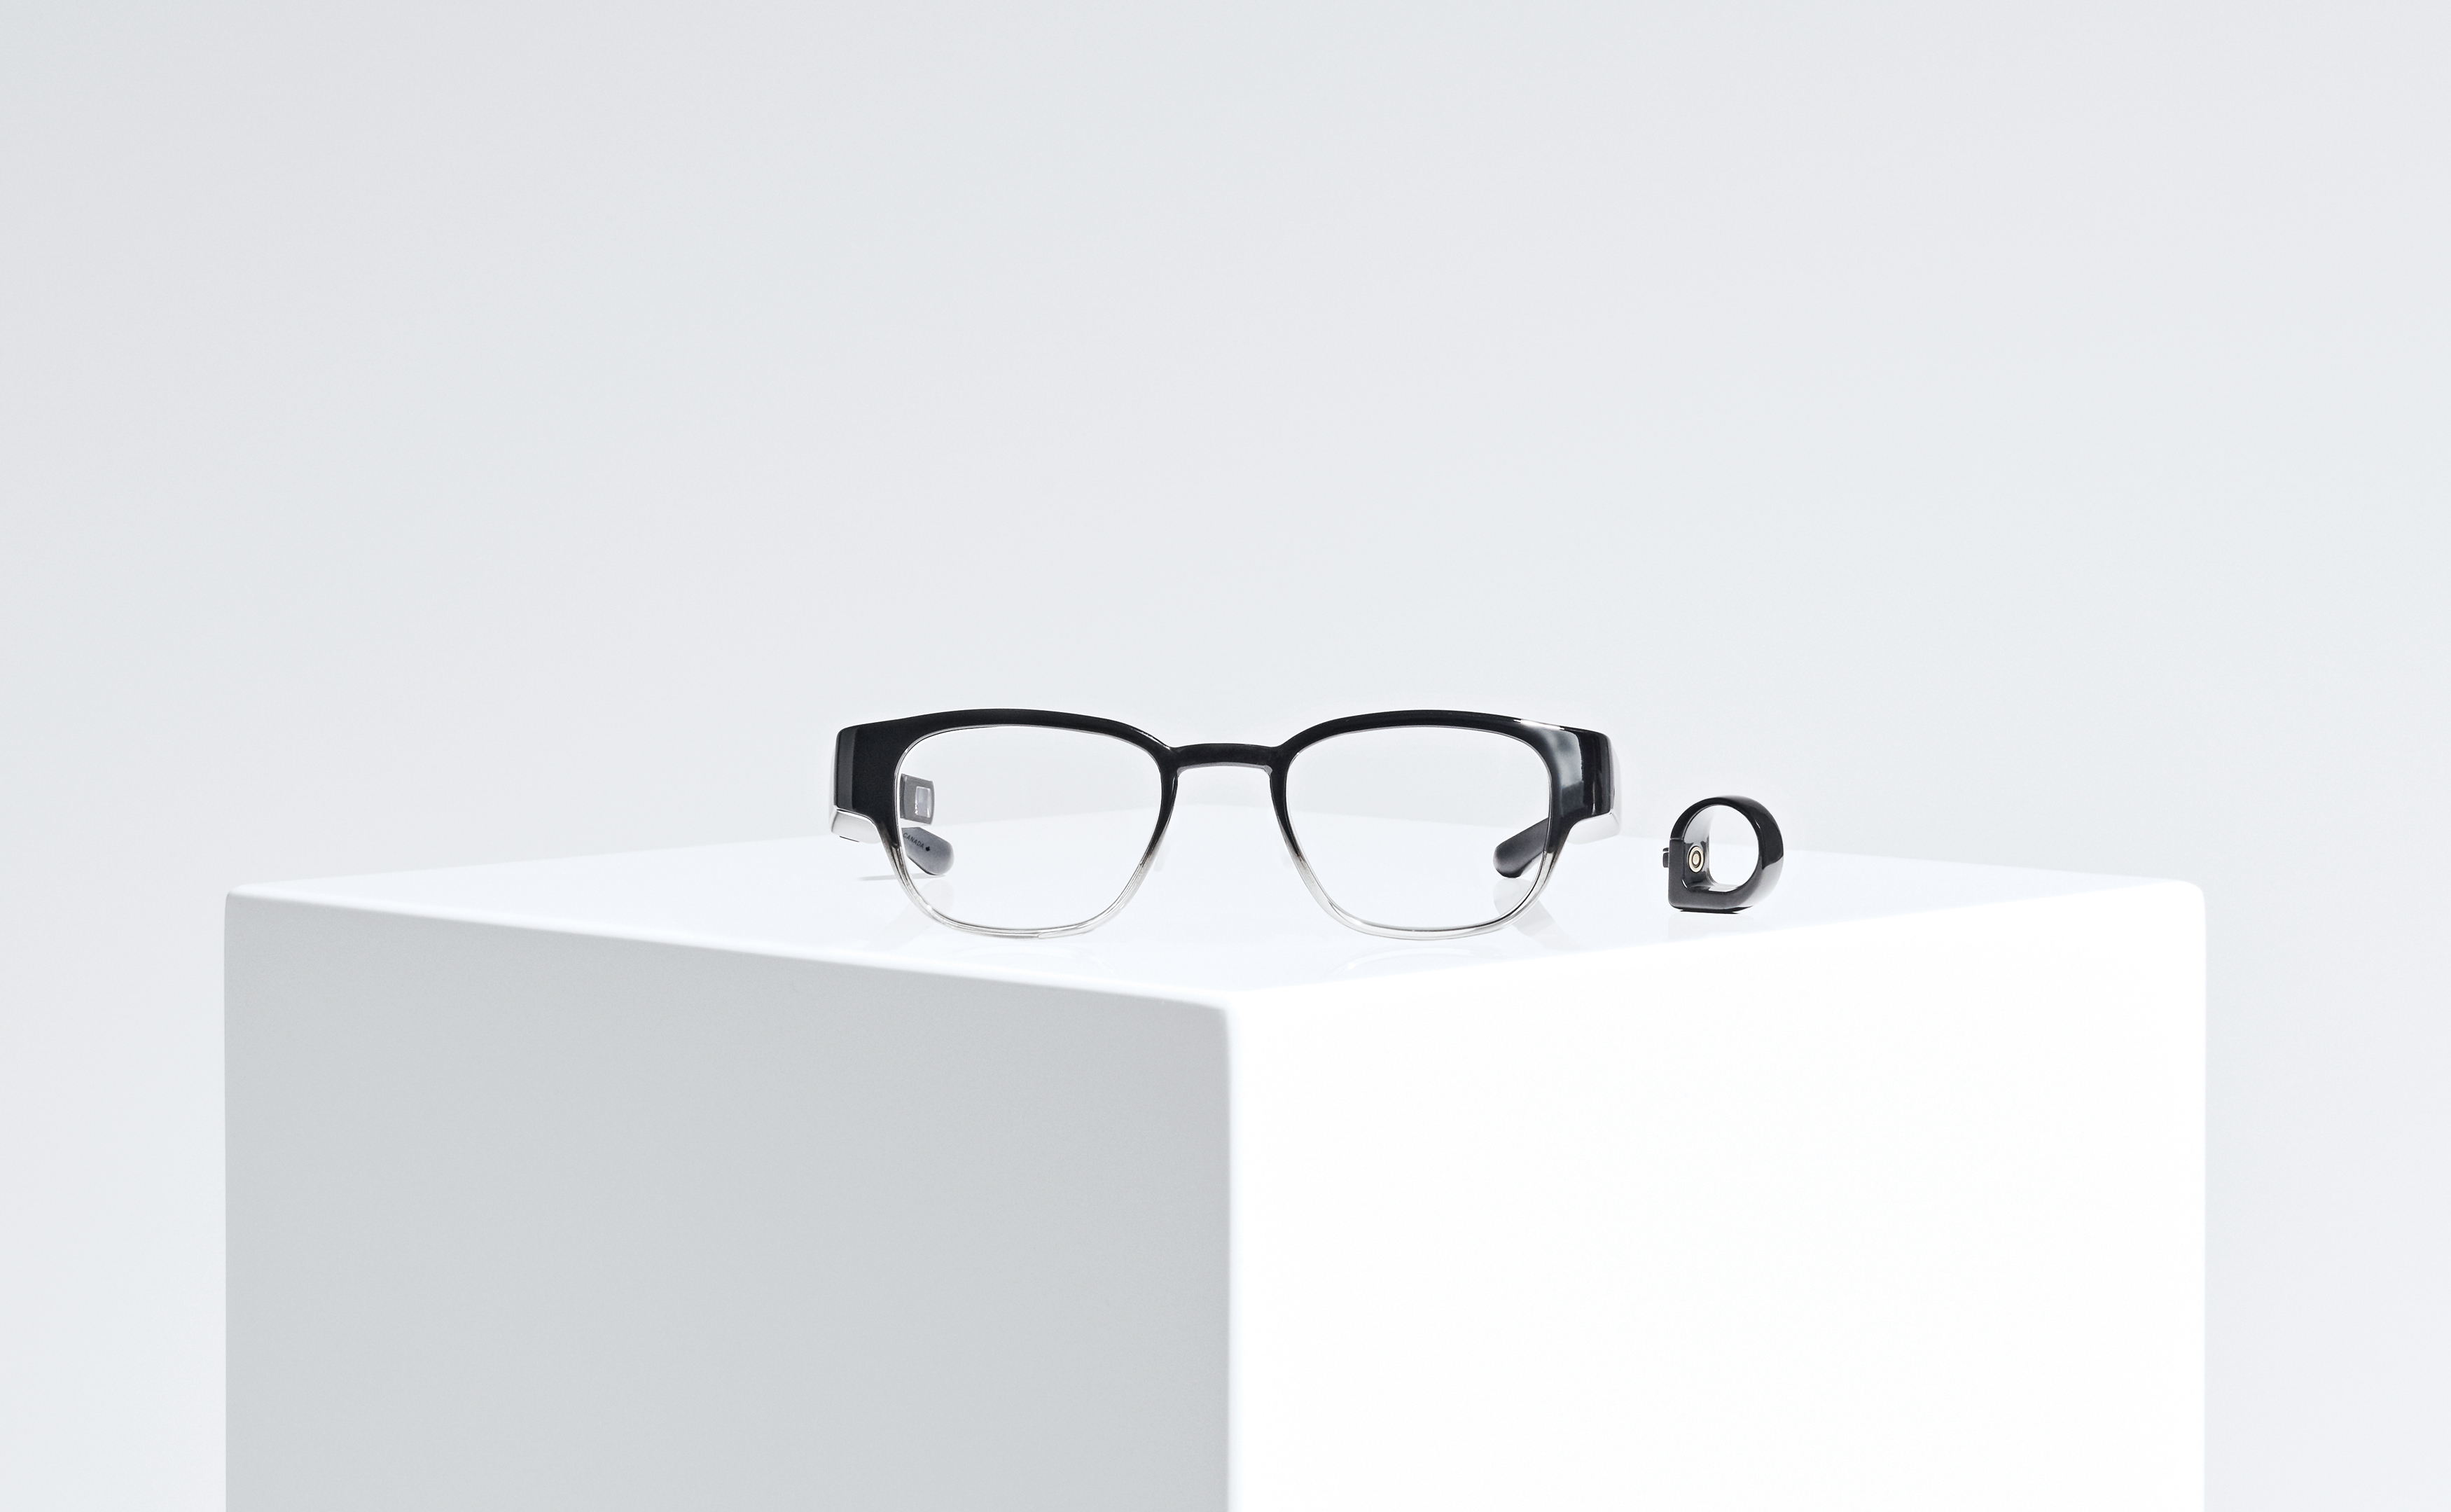 Introducing Focals